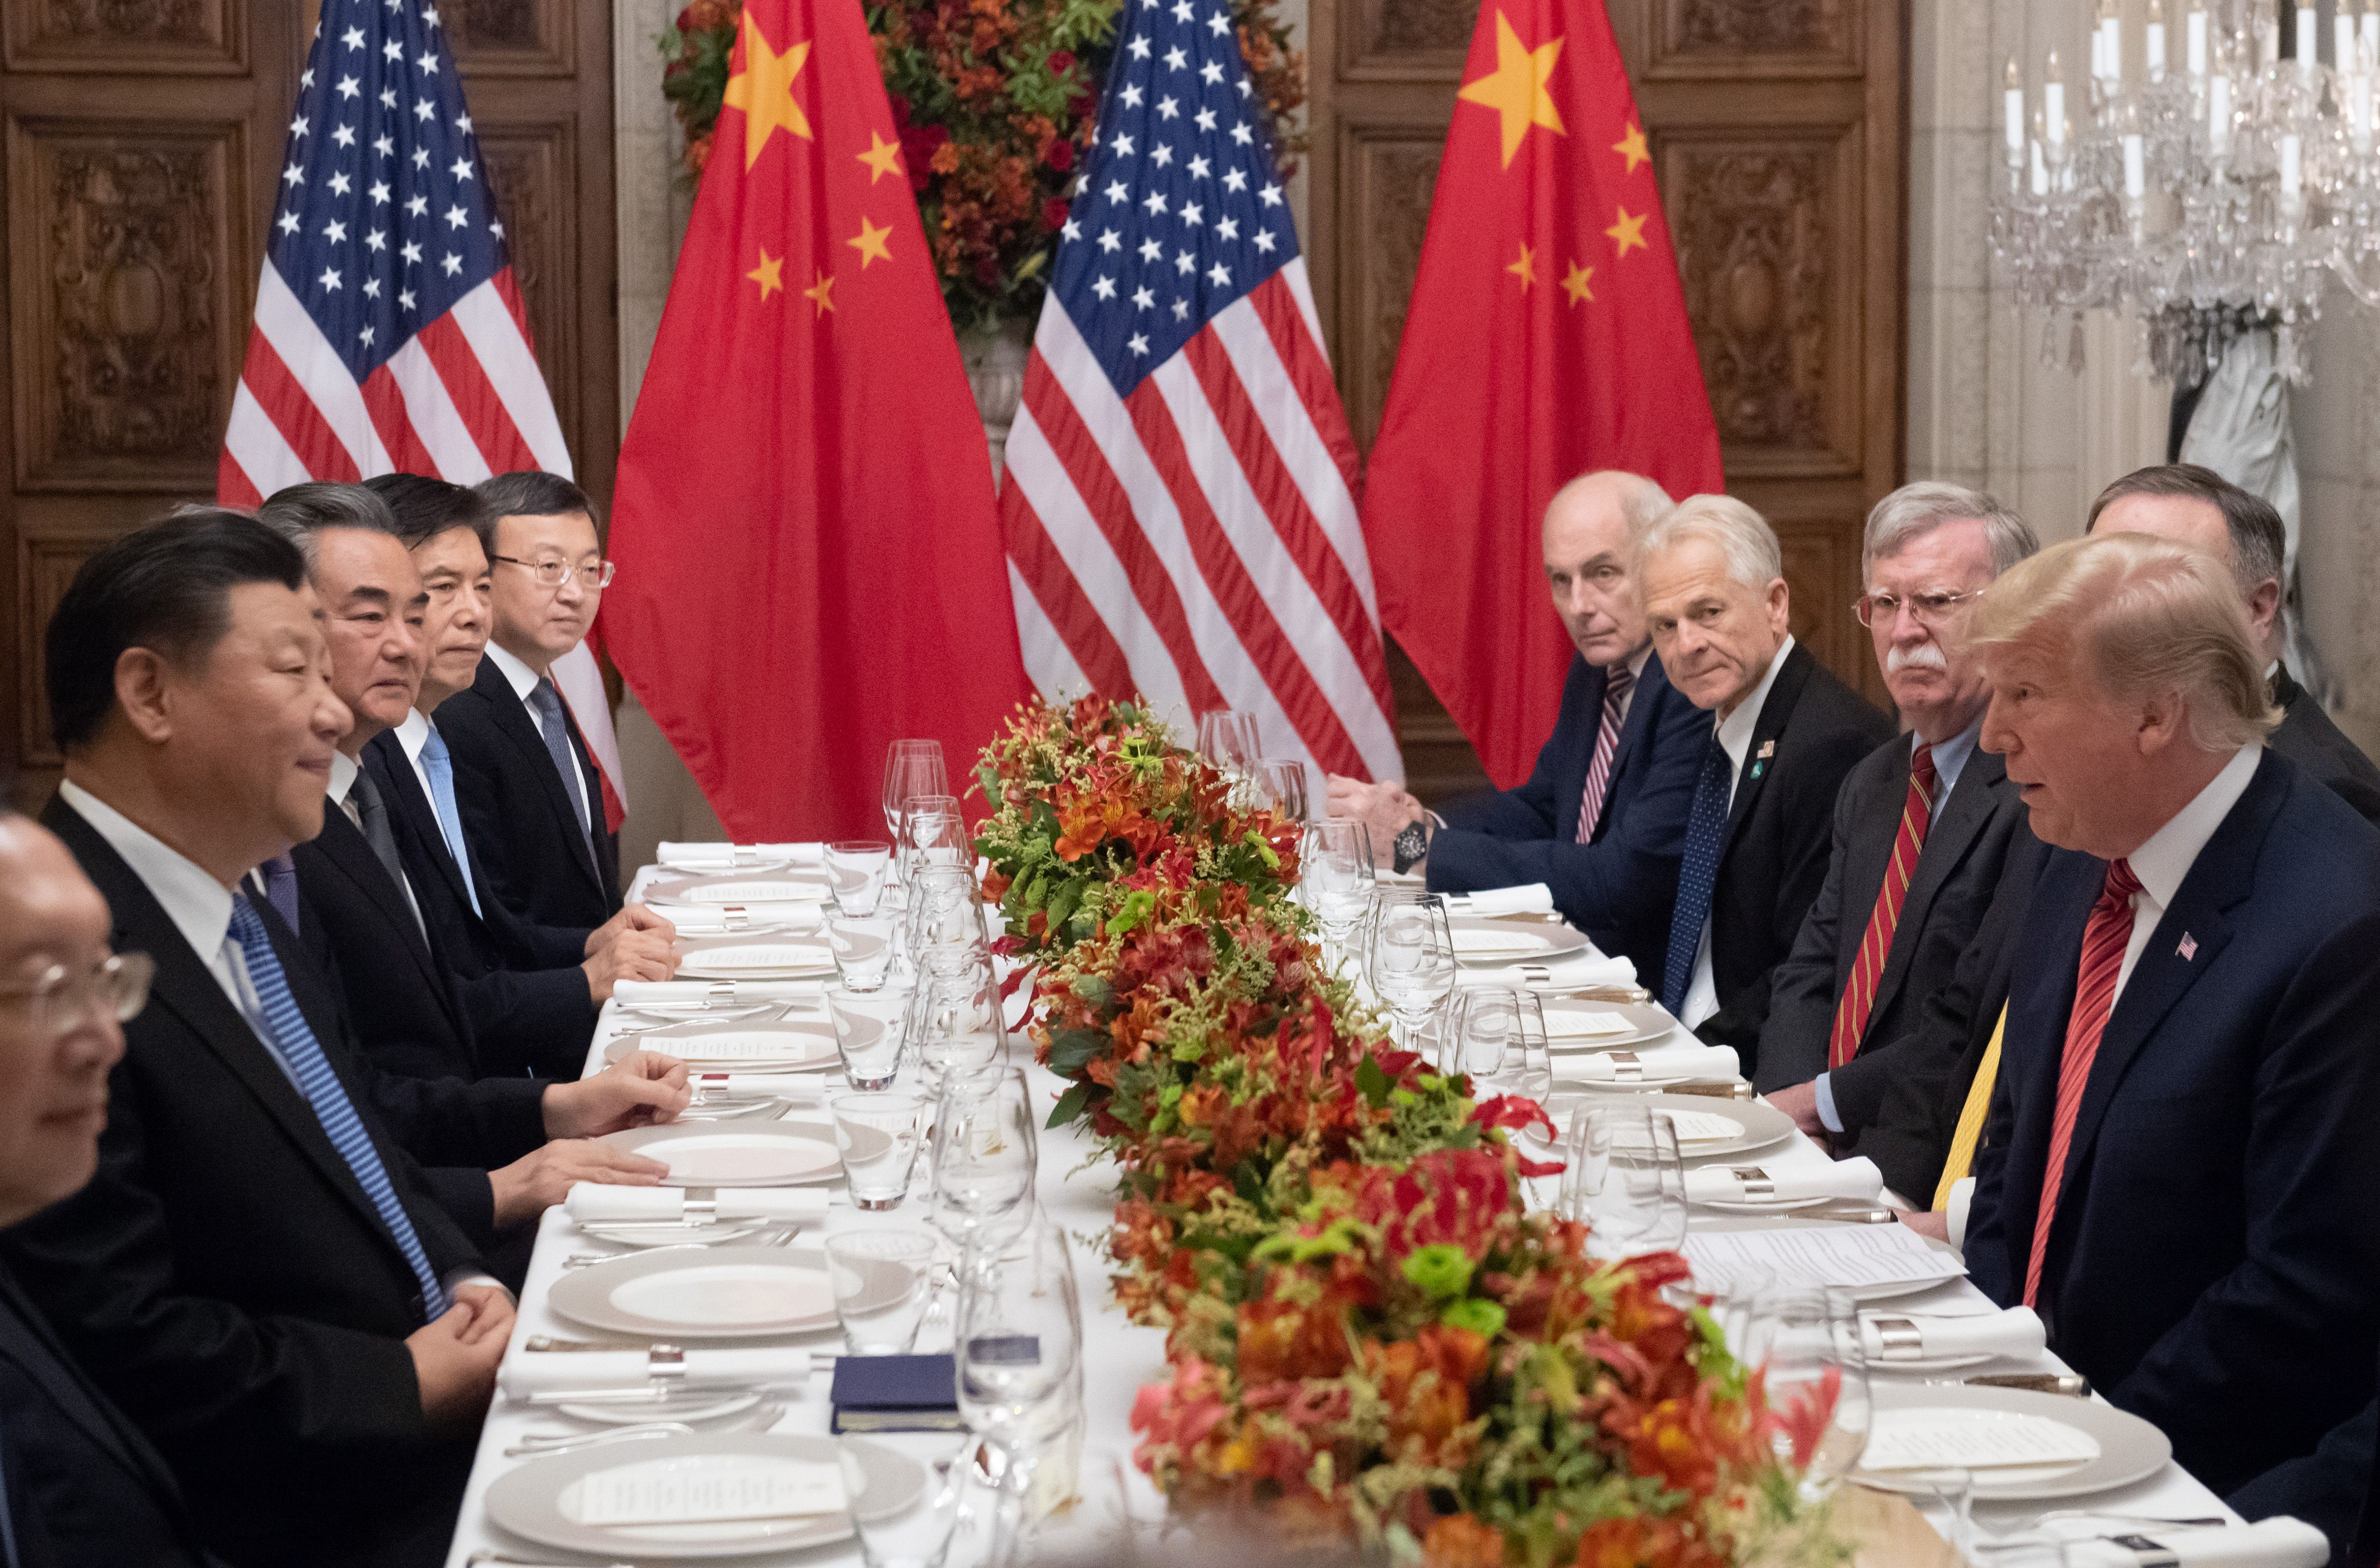 U.S. President Donald Trump (R) and China's President Xi Jinping (L) along with members of their delegations, hold a dinner meeting at the end of the G20 Leaders' Summit in Buenos Aires, on Dec. 1, 2018.